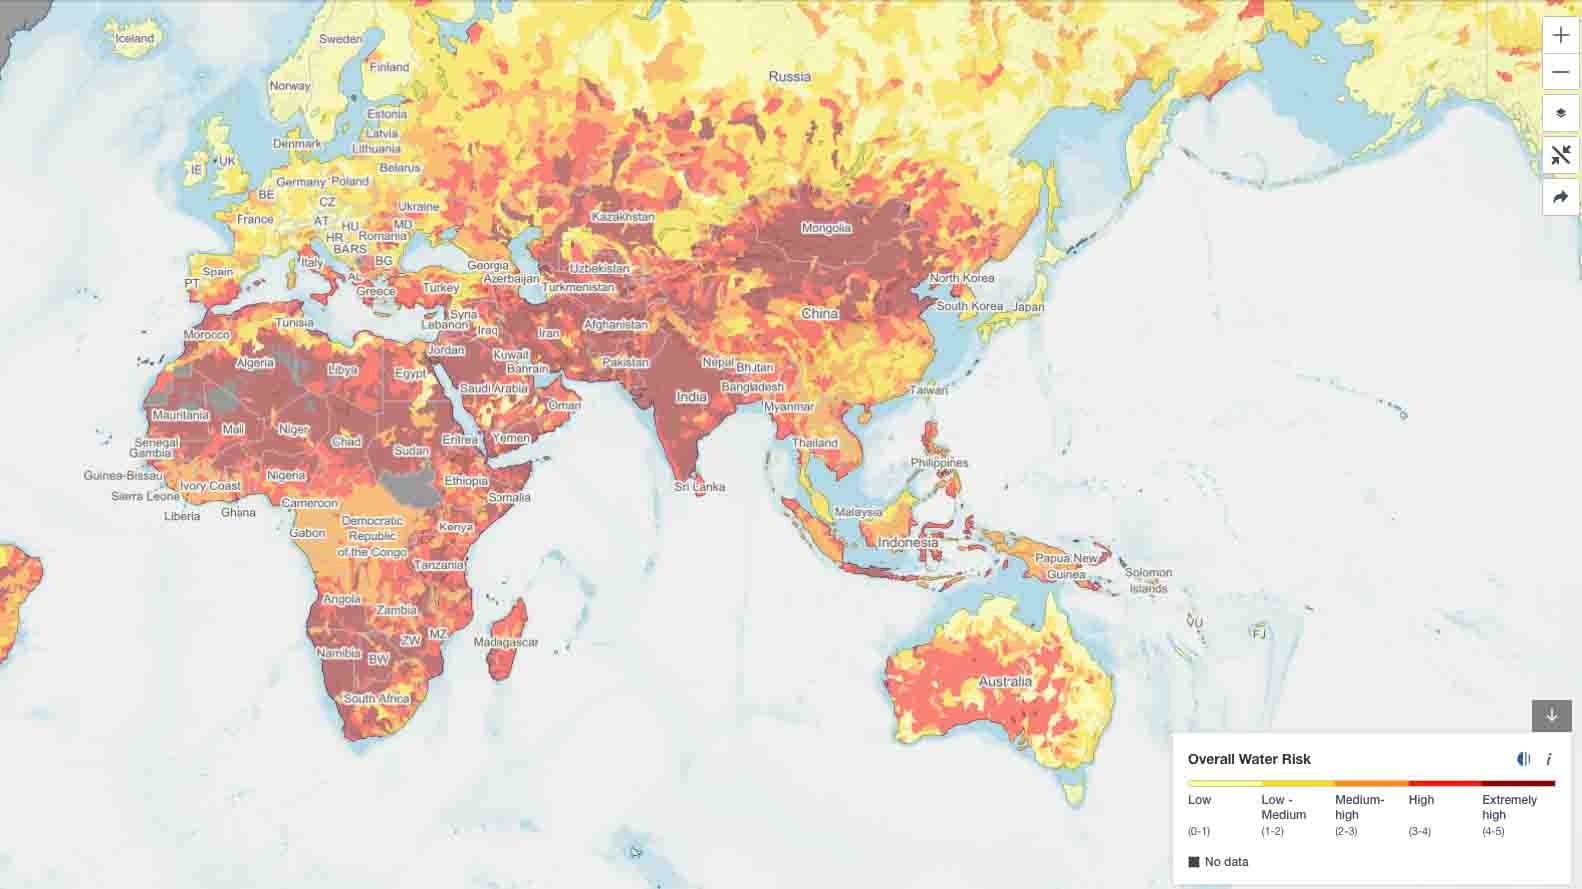 overall water risk atlas